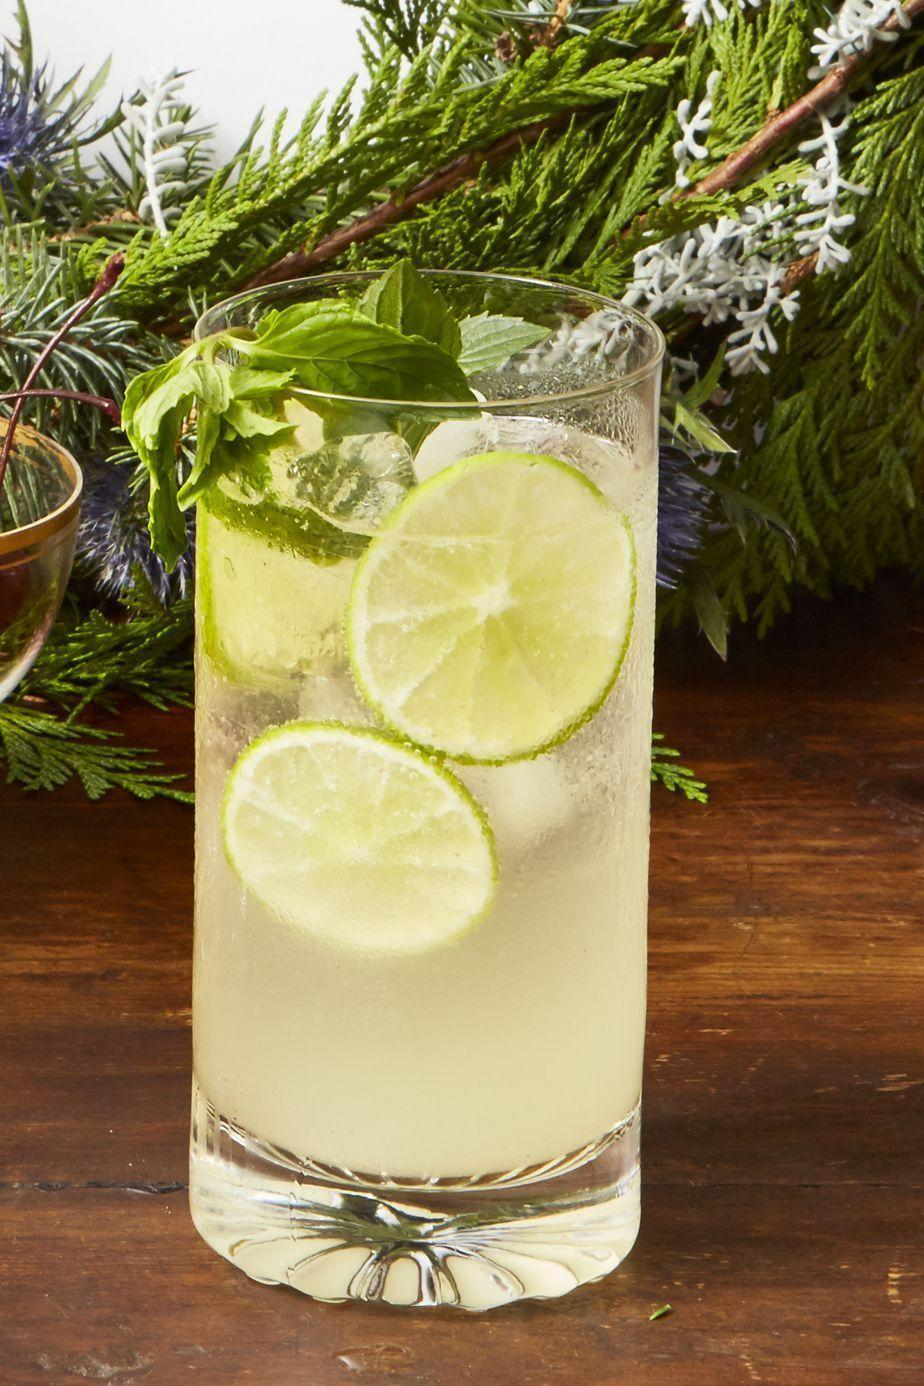 """<p>Your team is going to win the big game — and that calls for champagne. Might as well drink it in this recipe that also includes some minty mojito. </p><p><em><a href=""""https://www.goodhousekeeping.com/food-recipes/party-ideas/a25310946/sparkling-wine-mojito-punch-recipe/"""" rel=""""nofollow noopener"""" target=""""_blank"""" data-ylk=""""slk:Get the recipe for Sparkling Wine Mojito Punch »"""" class=""""link rapid-noclick-resp"""">Get the recipe for Sparkling Wine Mojito Punch »</a></em></p>"""